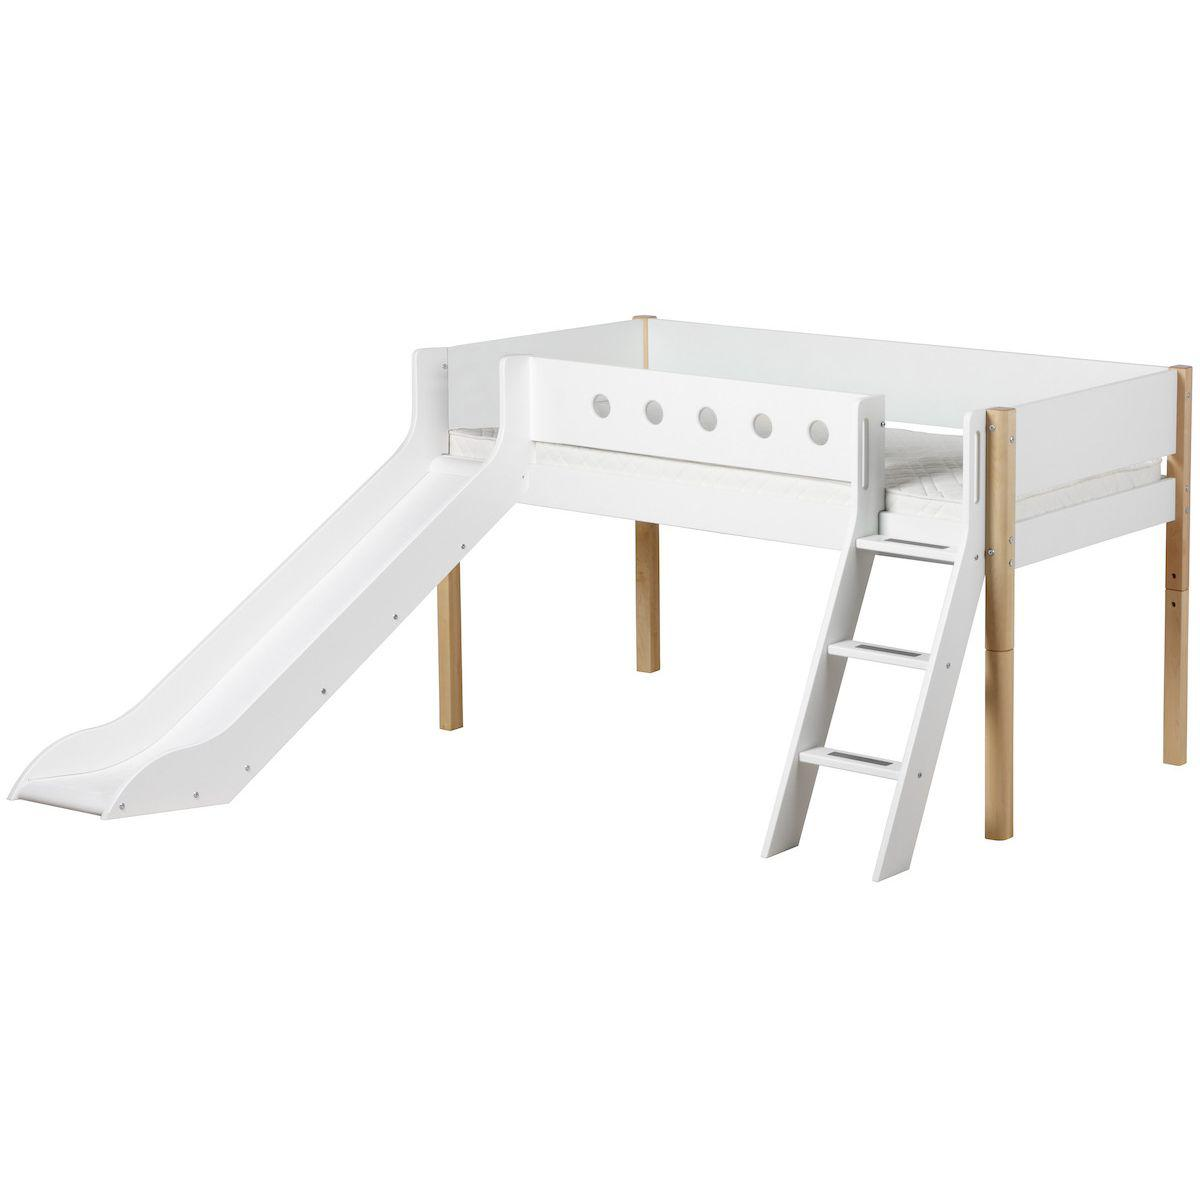 Cama media alta 90x190 WHITE Flexa escalera inclinada tobogán barrera blanca patas abedul